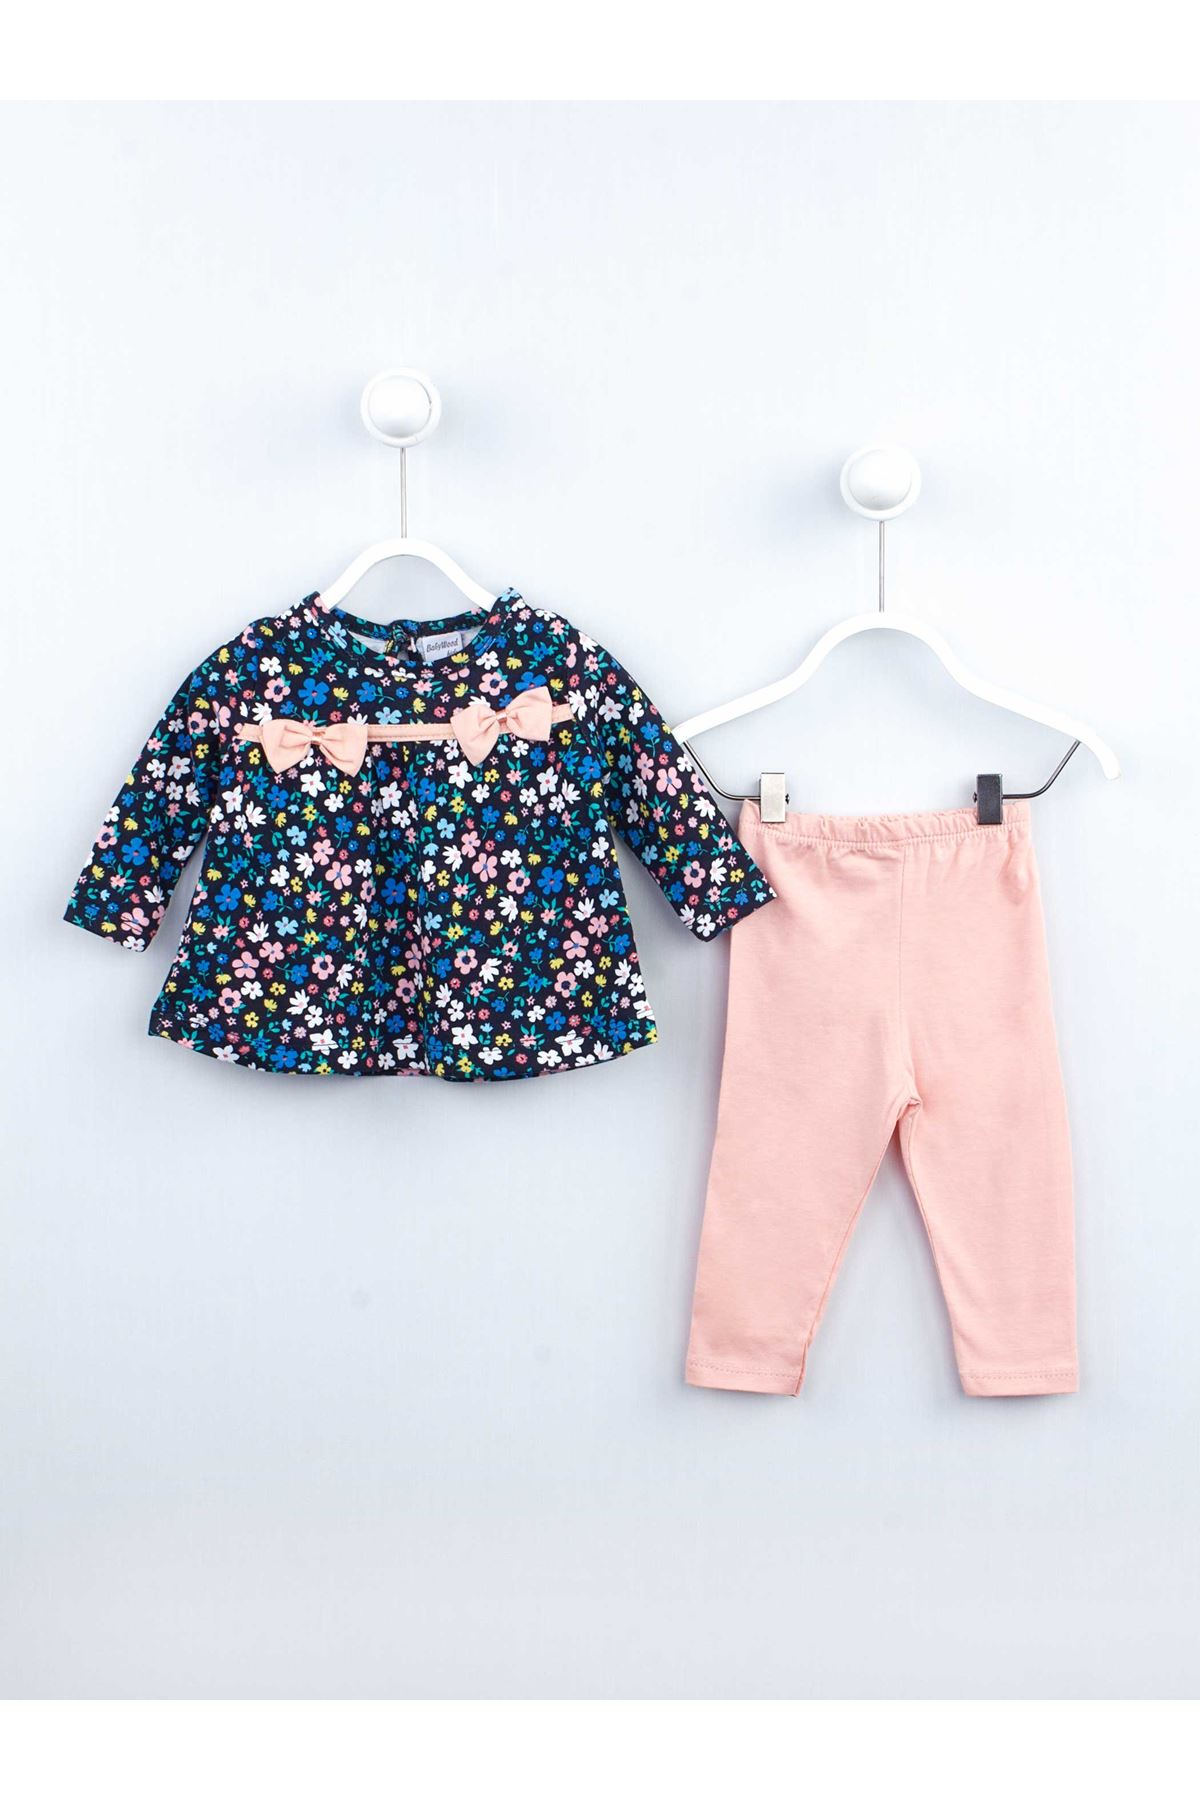 Powder pink Baby Girl Daily 2 Piece Suit Set Cotton Daily Seasonal Casual Wear Girls Babies Suit Outfit Models